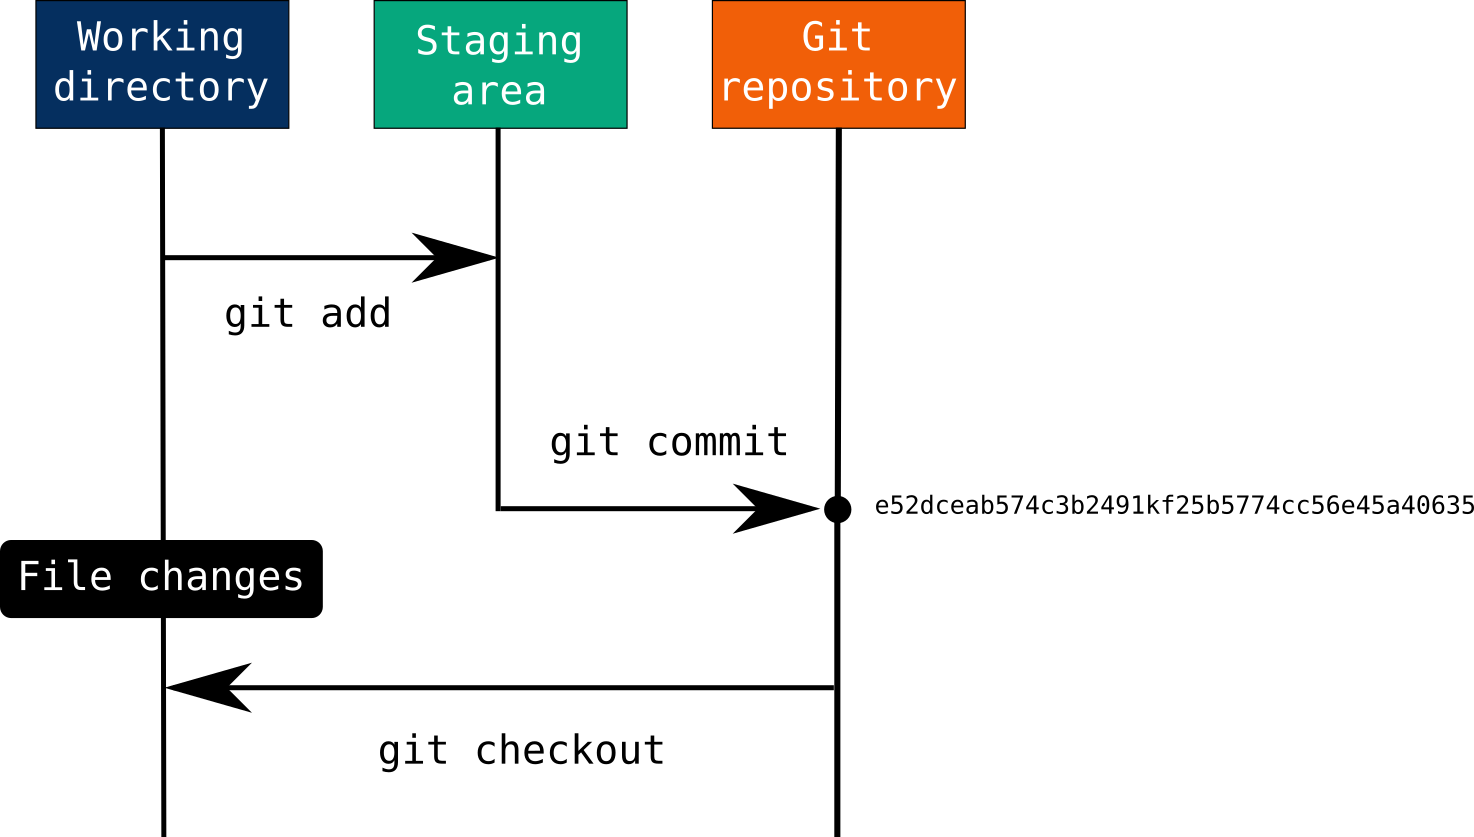 Git checkout can undo unstaged changes by pulling the previous commit's version of a file from repository's history.